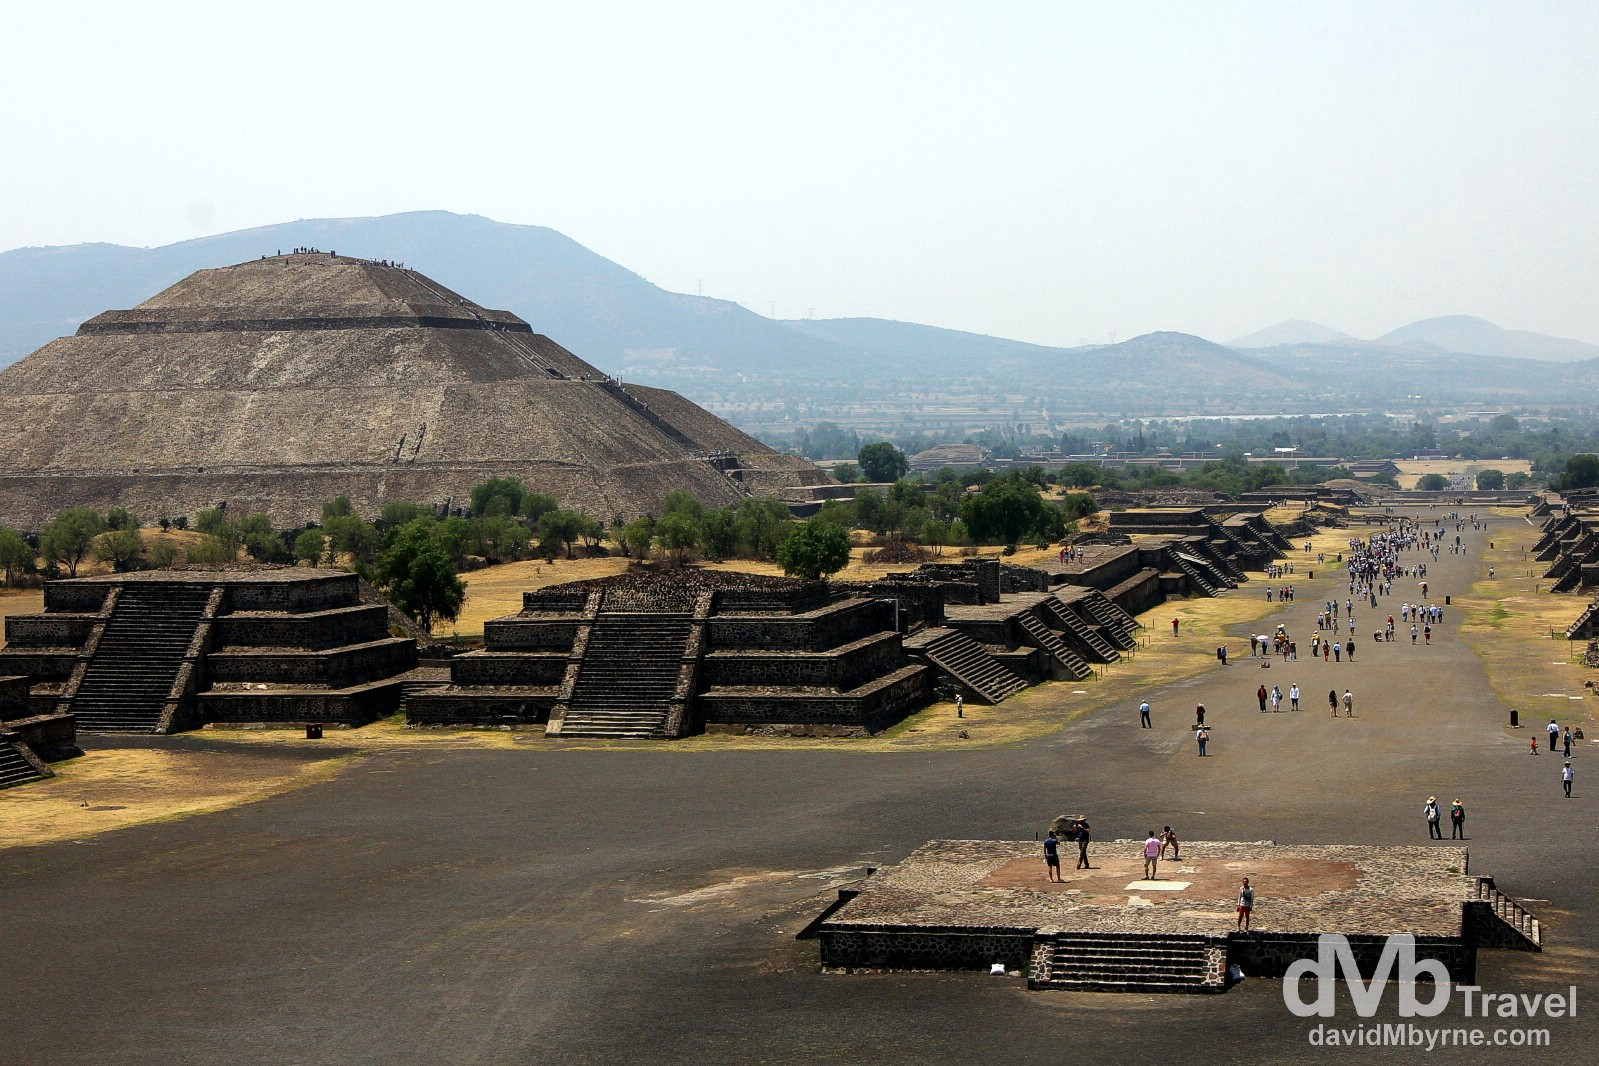 Looking towards the Piramide de la Sol (the Pyramid of the Sun) & down Calzada de los Muertos (the Avenue of the Dead) from the steps of the Piramide de la Luna (the Pyramid of the Moon) in Teotihuacan, Mexico. April 29th 2013.